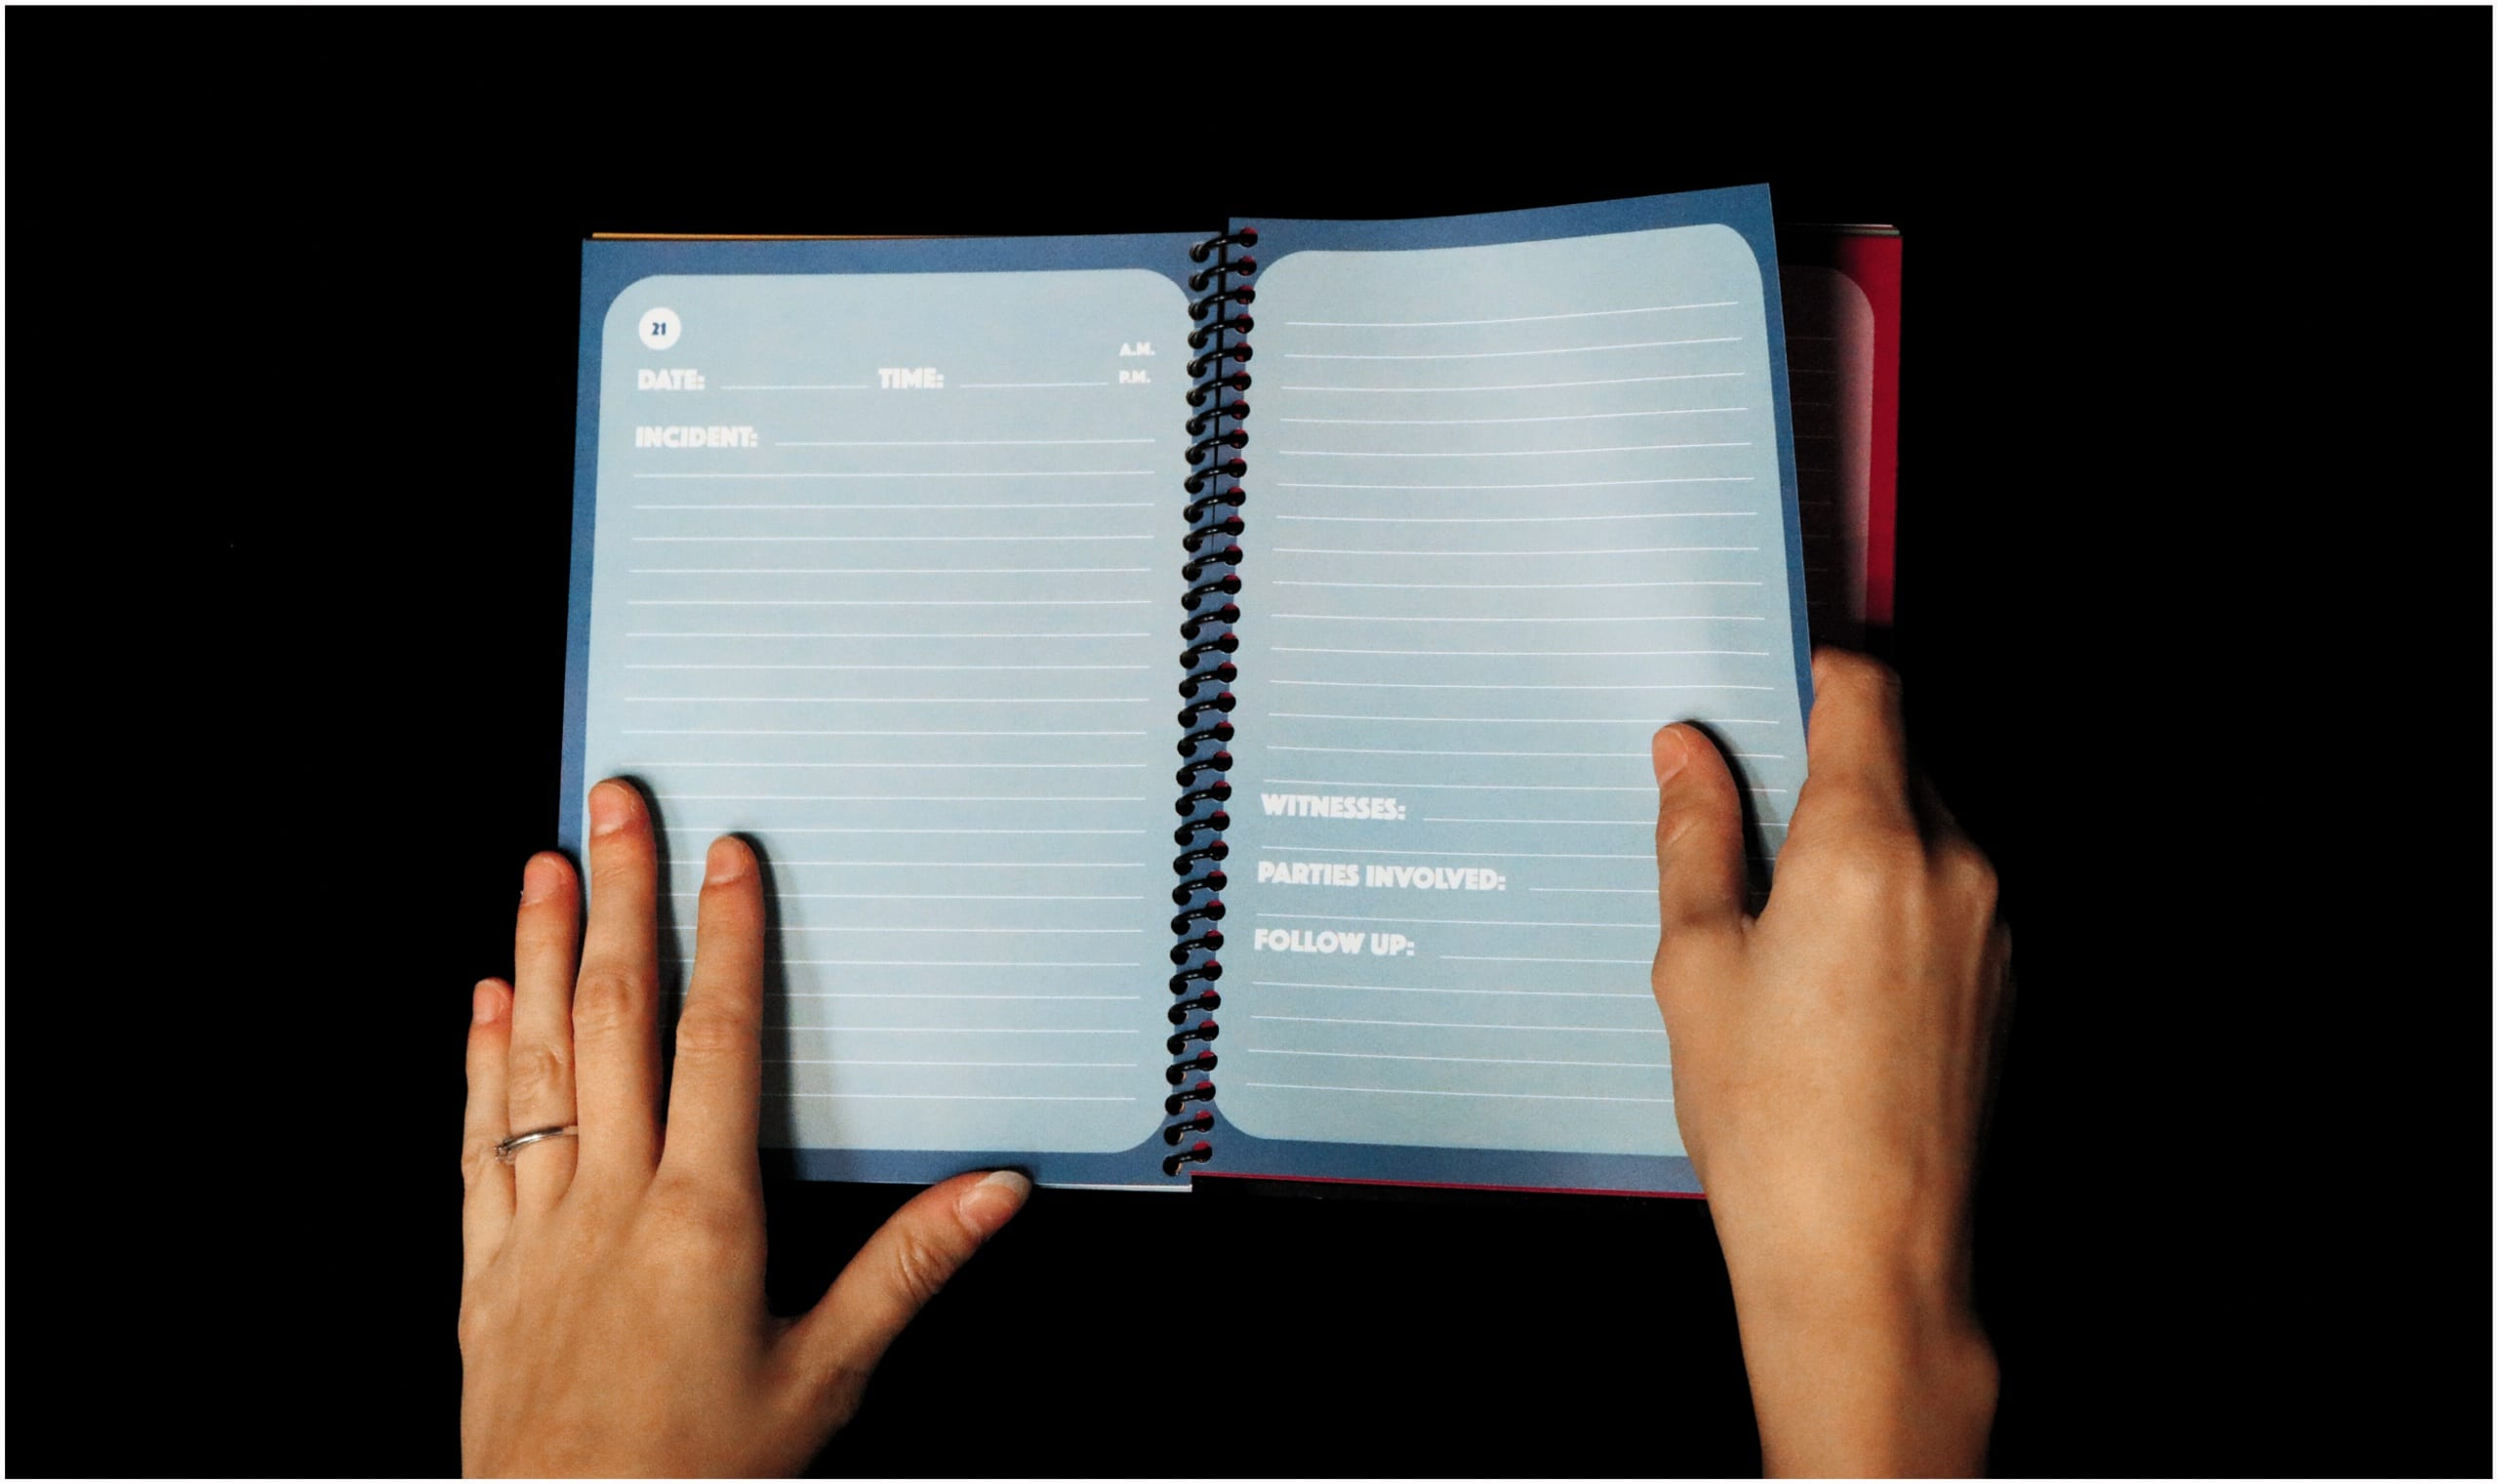 """Color photo of two hands grasping an open spiral-bound notebook. The light-blue pages are ruled and feature a template, with slots for the following information: """"Date,"""" """"Time,"""" """"A.M./P.M.,"""" """"Incidents,"""" """"Witnesses,"""" """"Parties Involved,"""" and """"Follow Up."""""""